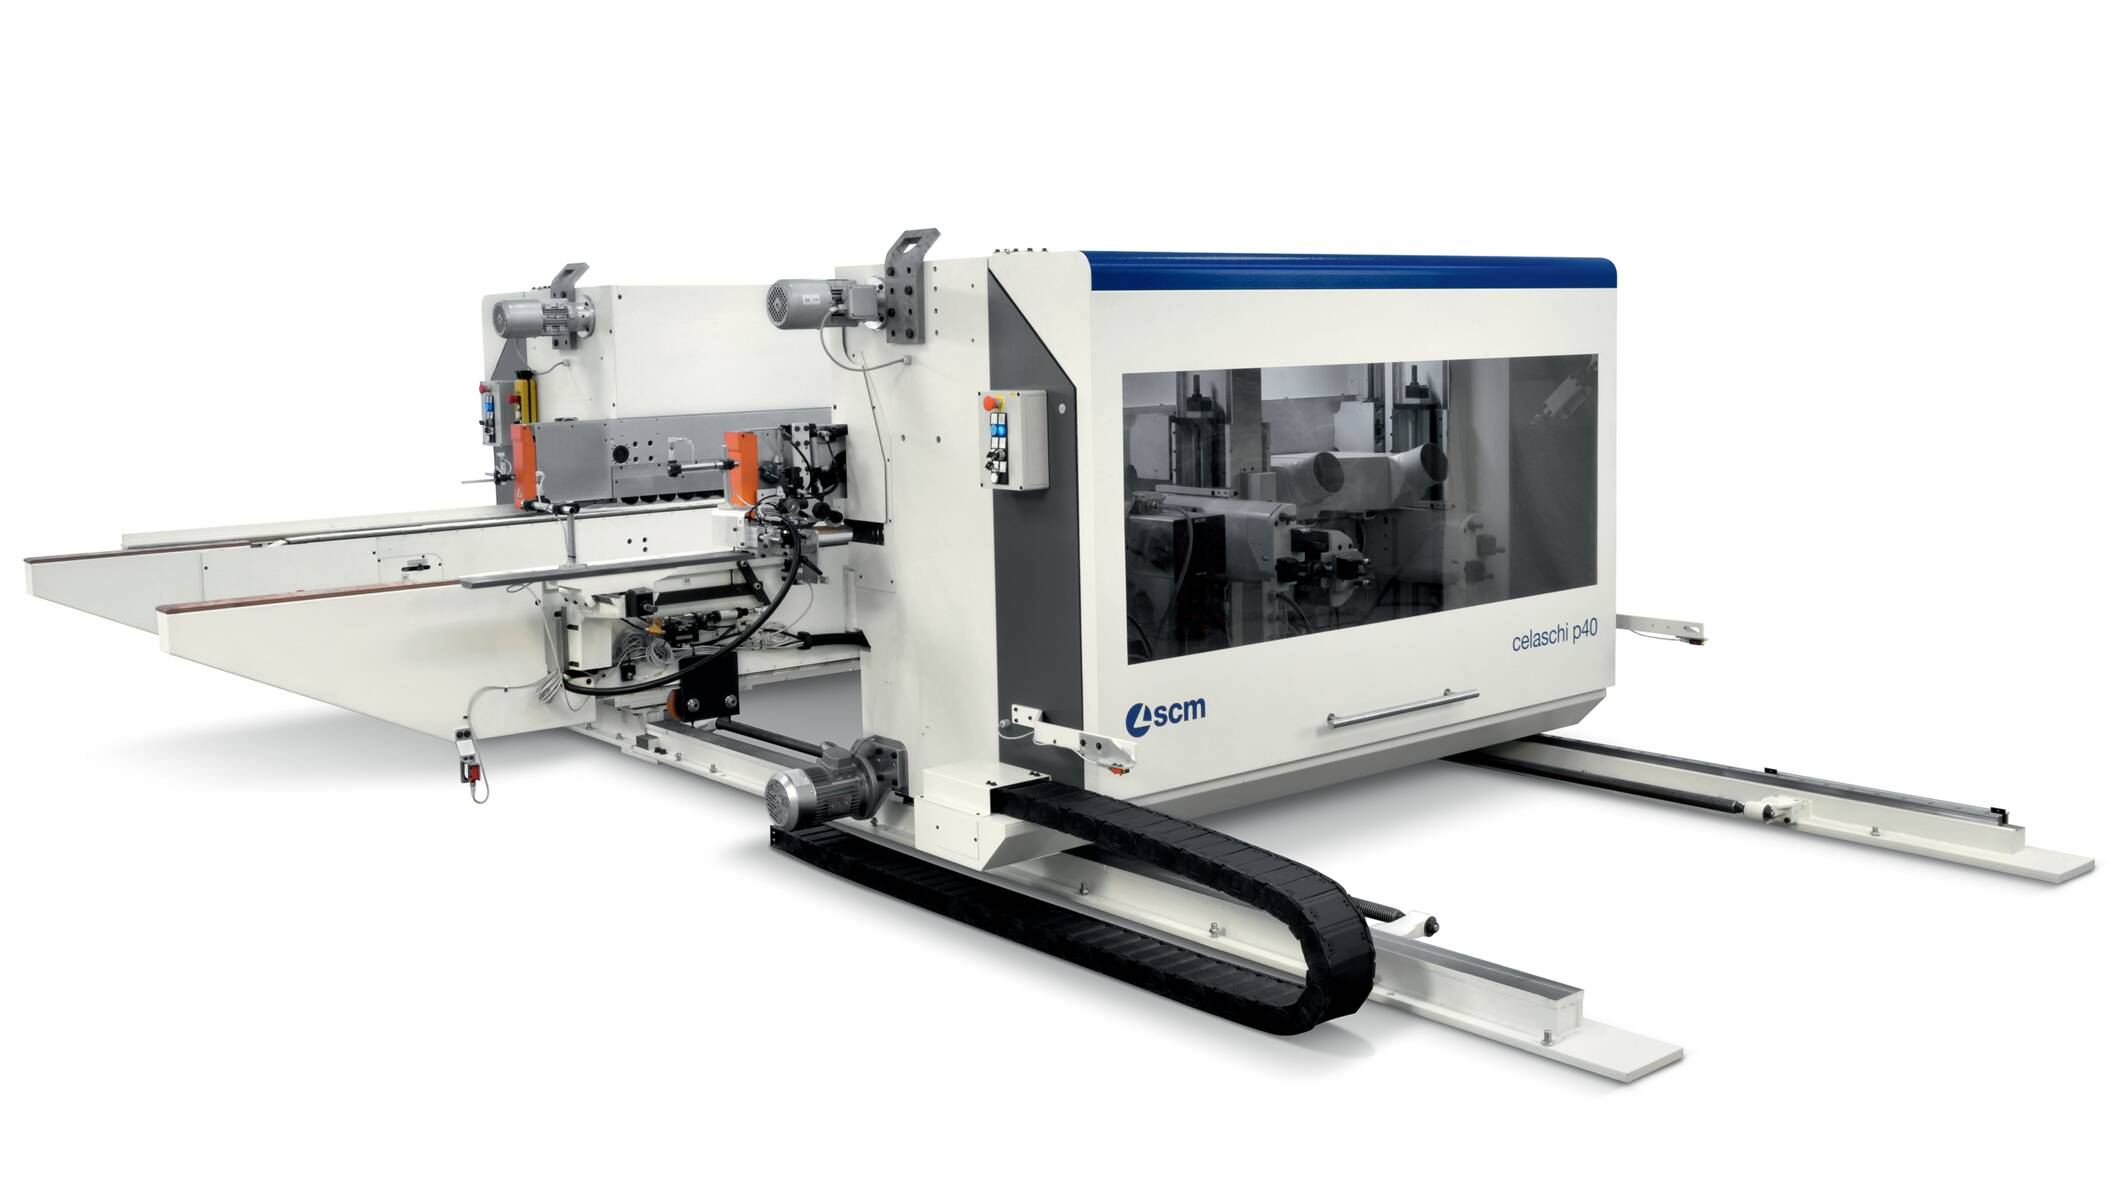 Profiling machines and double-end tenoners - Double-sided squaring and tenoning machines - celaschi p40